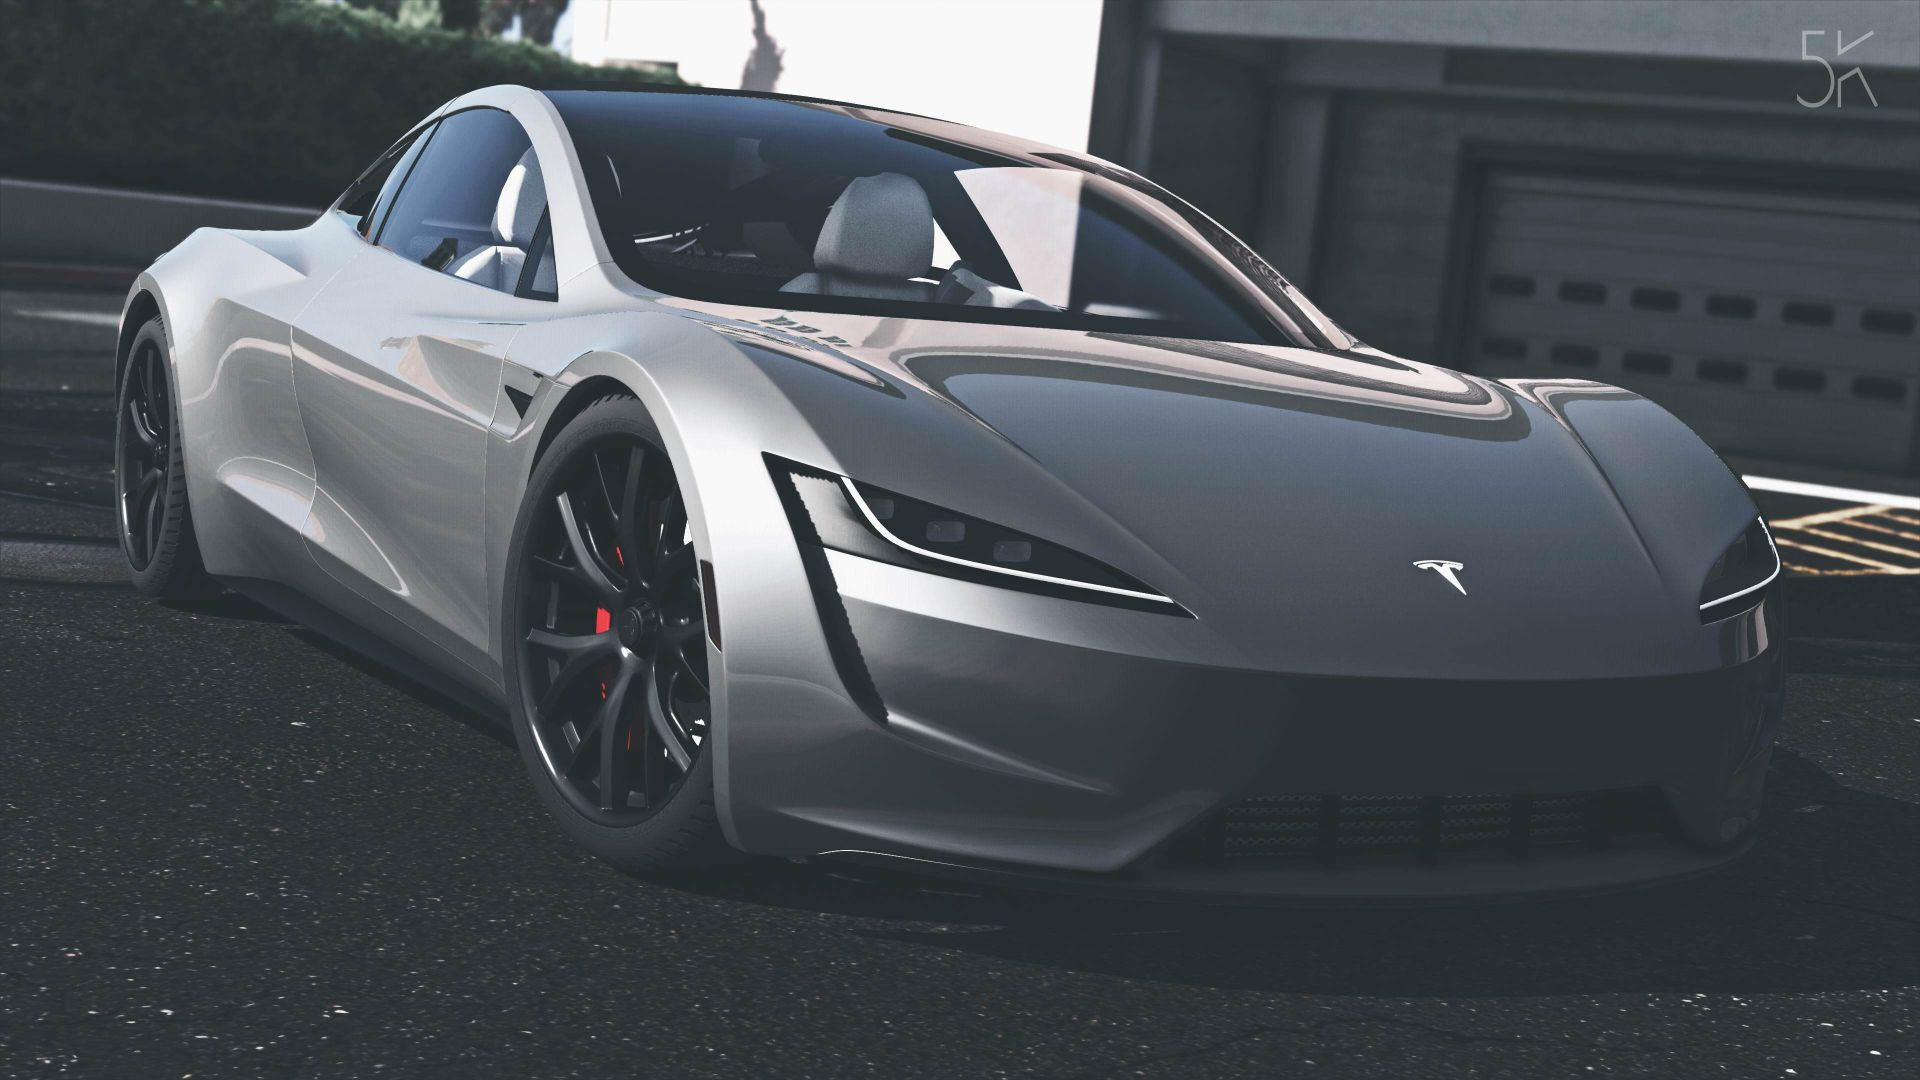 Tesla Roadster, GTA 5, 2020 Cars, electric car, 4K (horizontal)